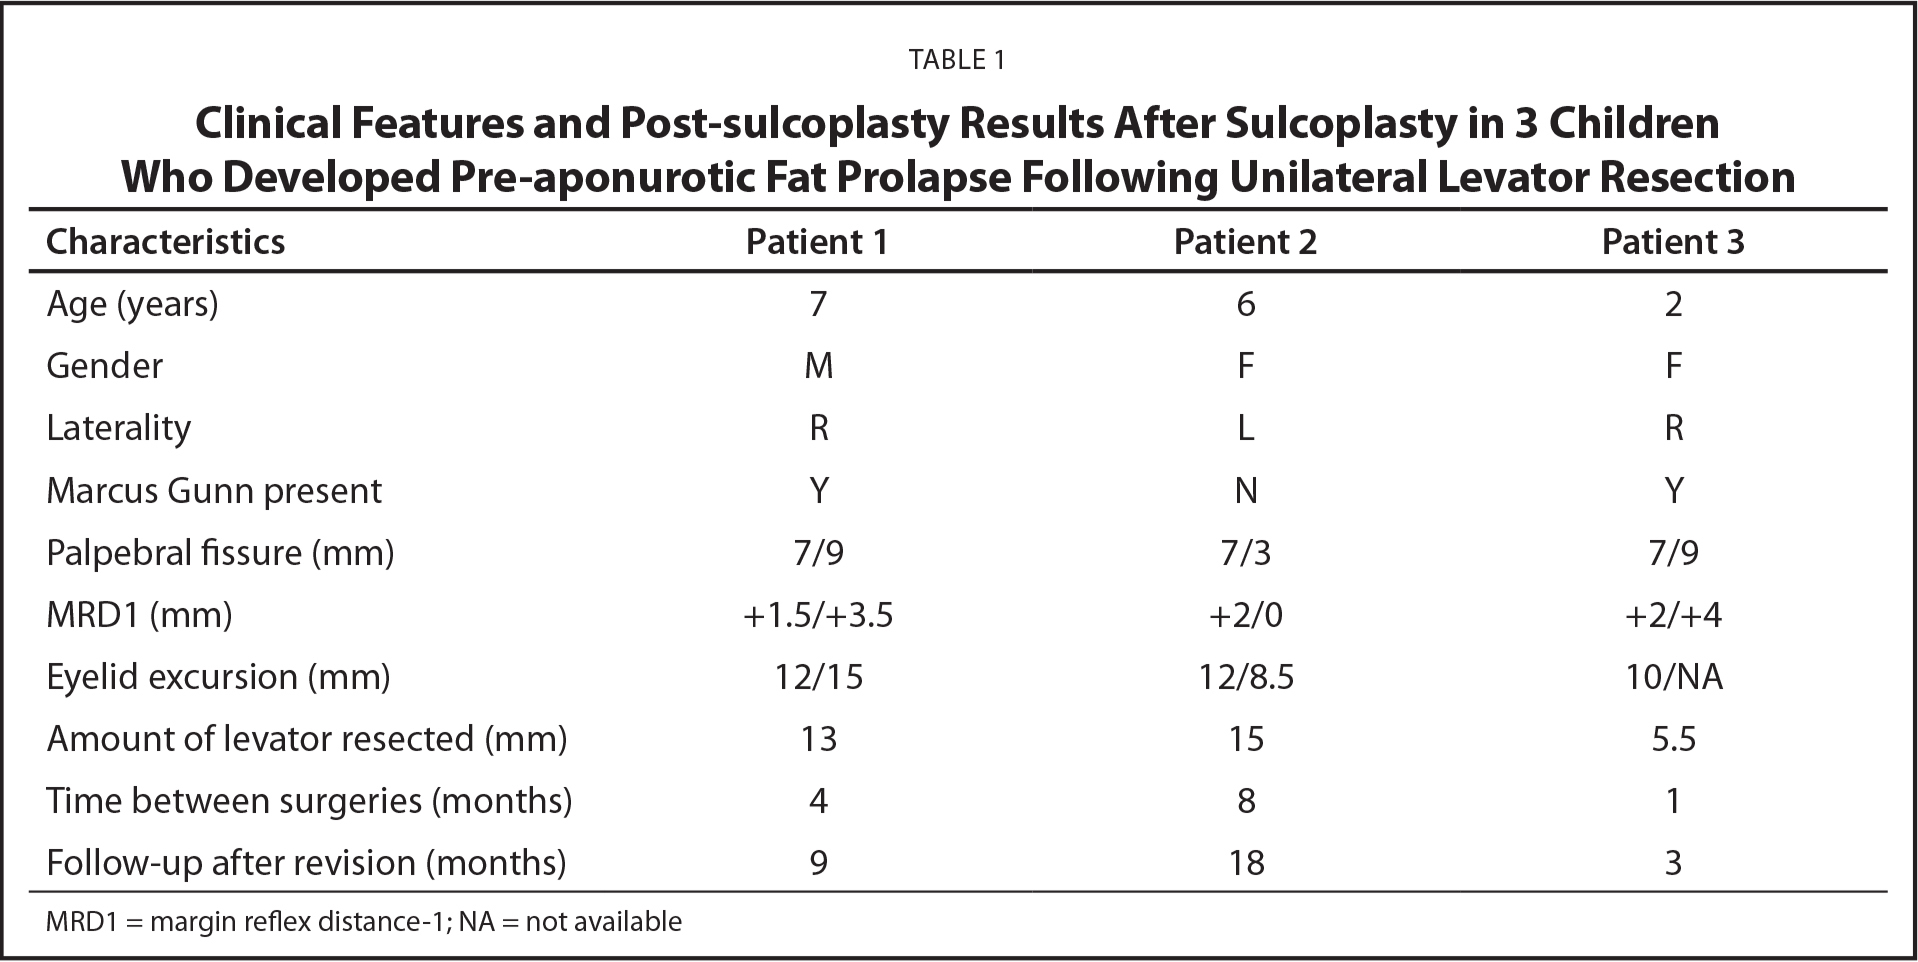 Clinical Features and Post-sulcoplasty Results After Sulcoplasty in 3 Children Who Developed Pre-aponurotic Fat Prolapse Following Unilateral Levator Resection